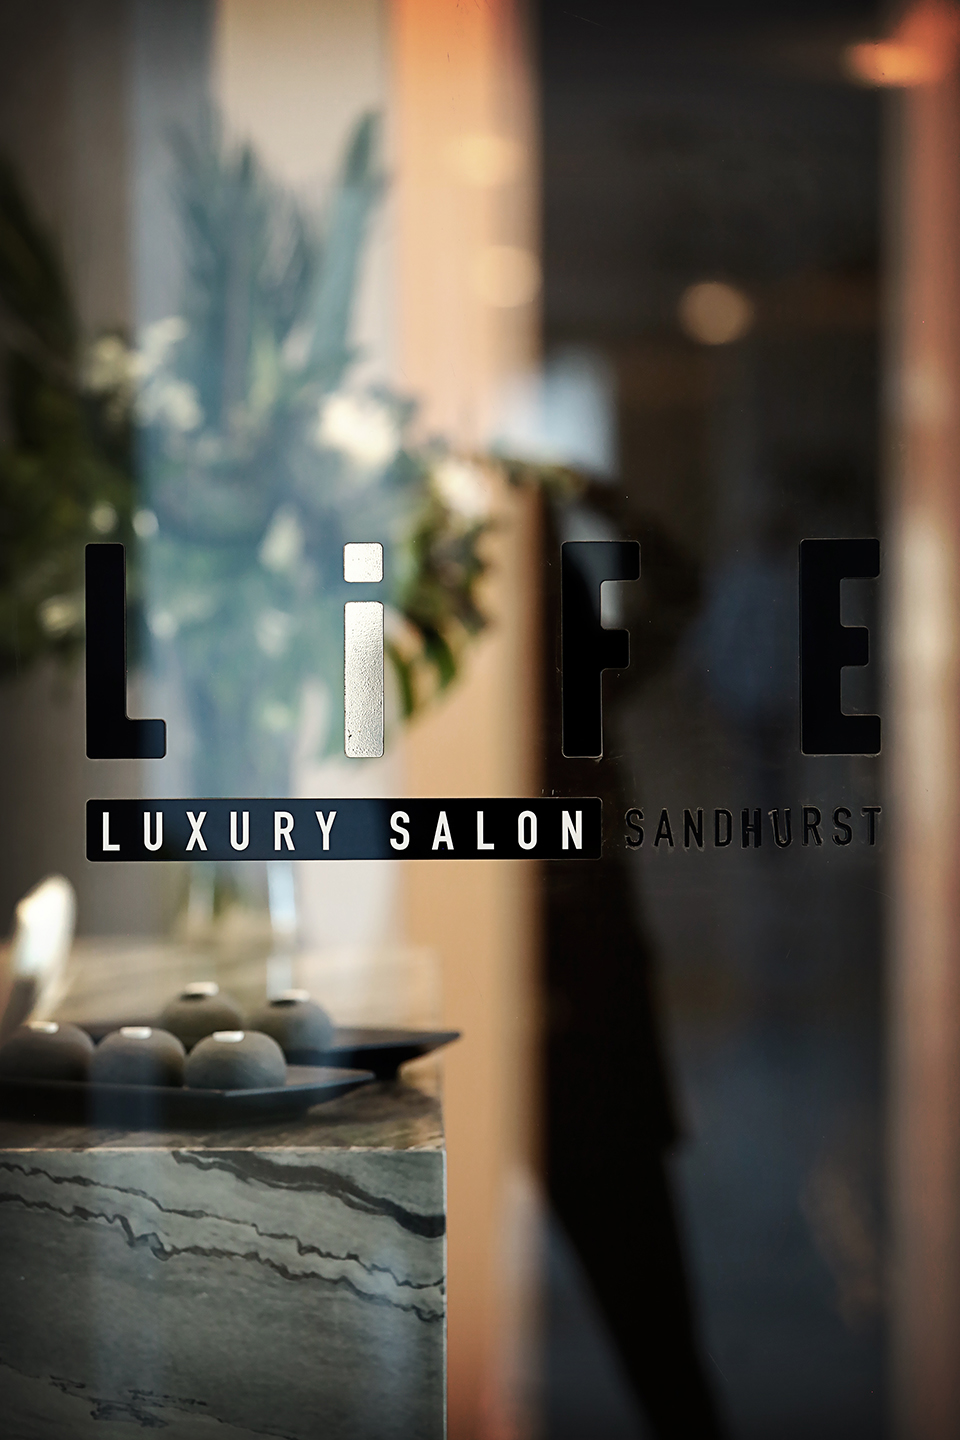 life-luxury-salon-sandton-spa-luxury-spa-review-best-spa-johannesburg-love-life-lifestyle-blogger-south-africa-amandacusto-001.jpg